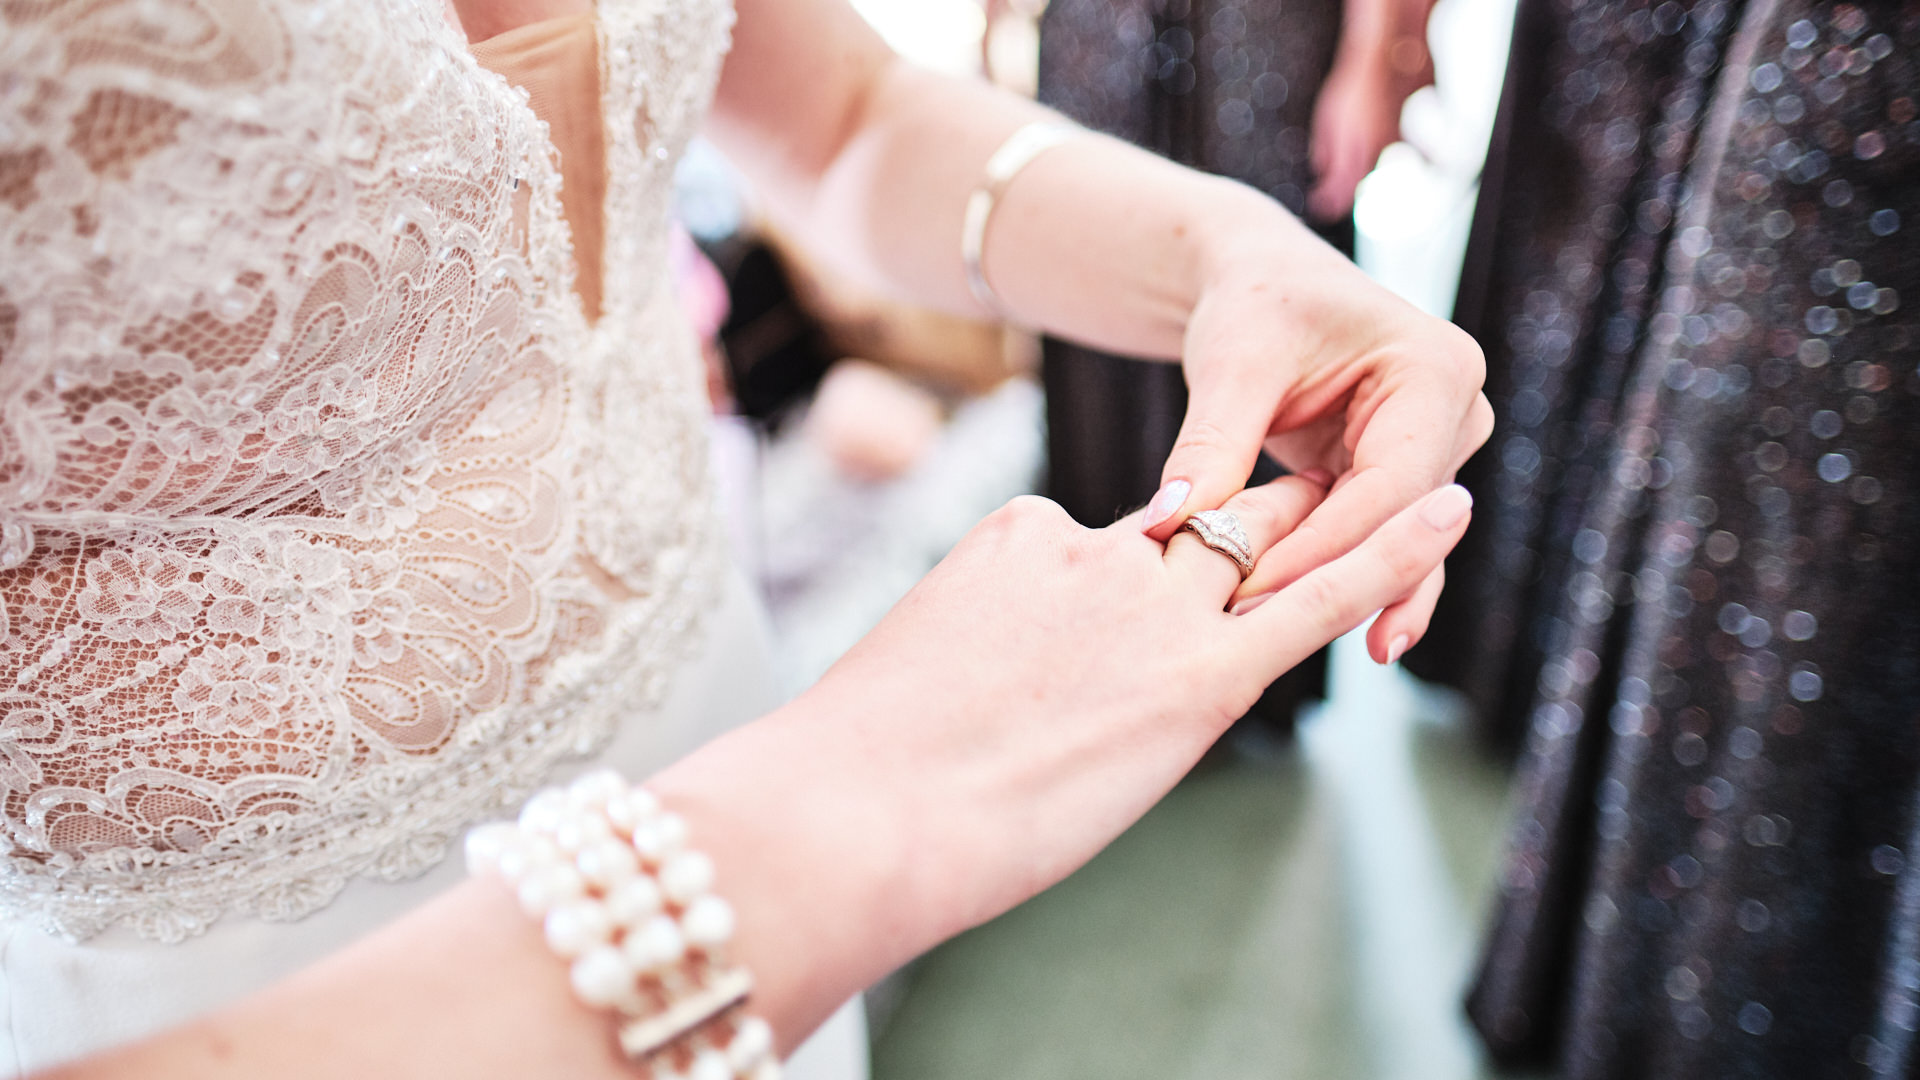 colour photograph of a bride moving her engagement ring to her right hand before her wedding